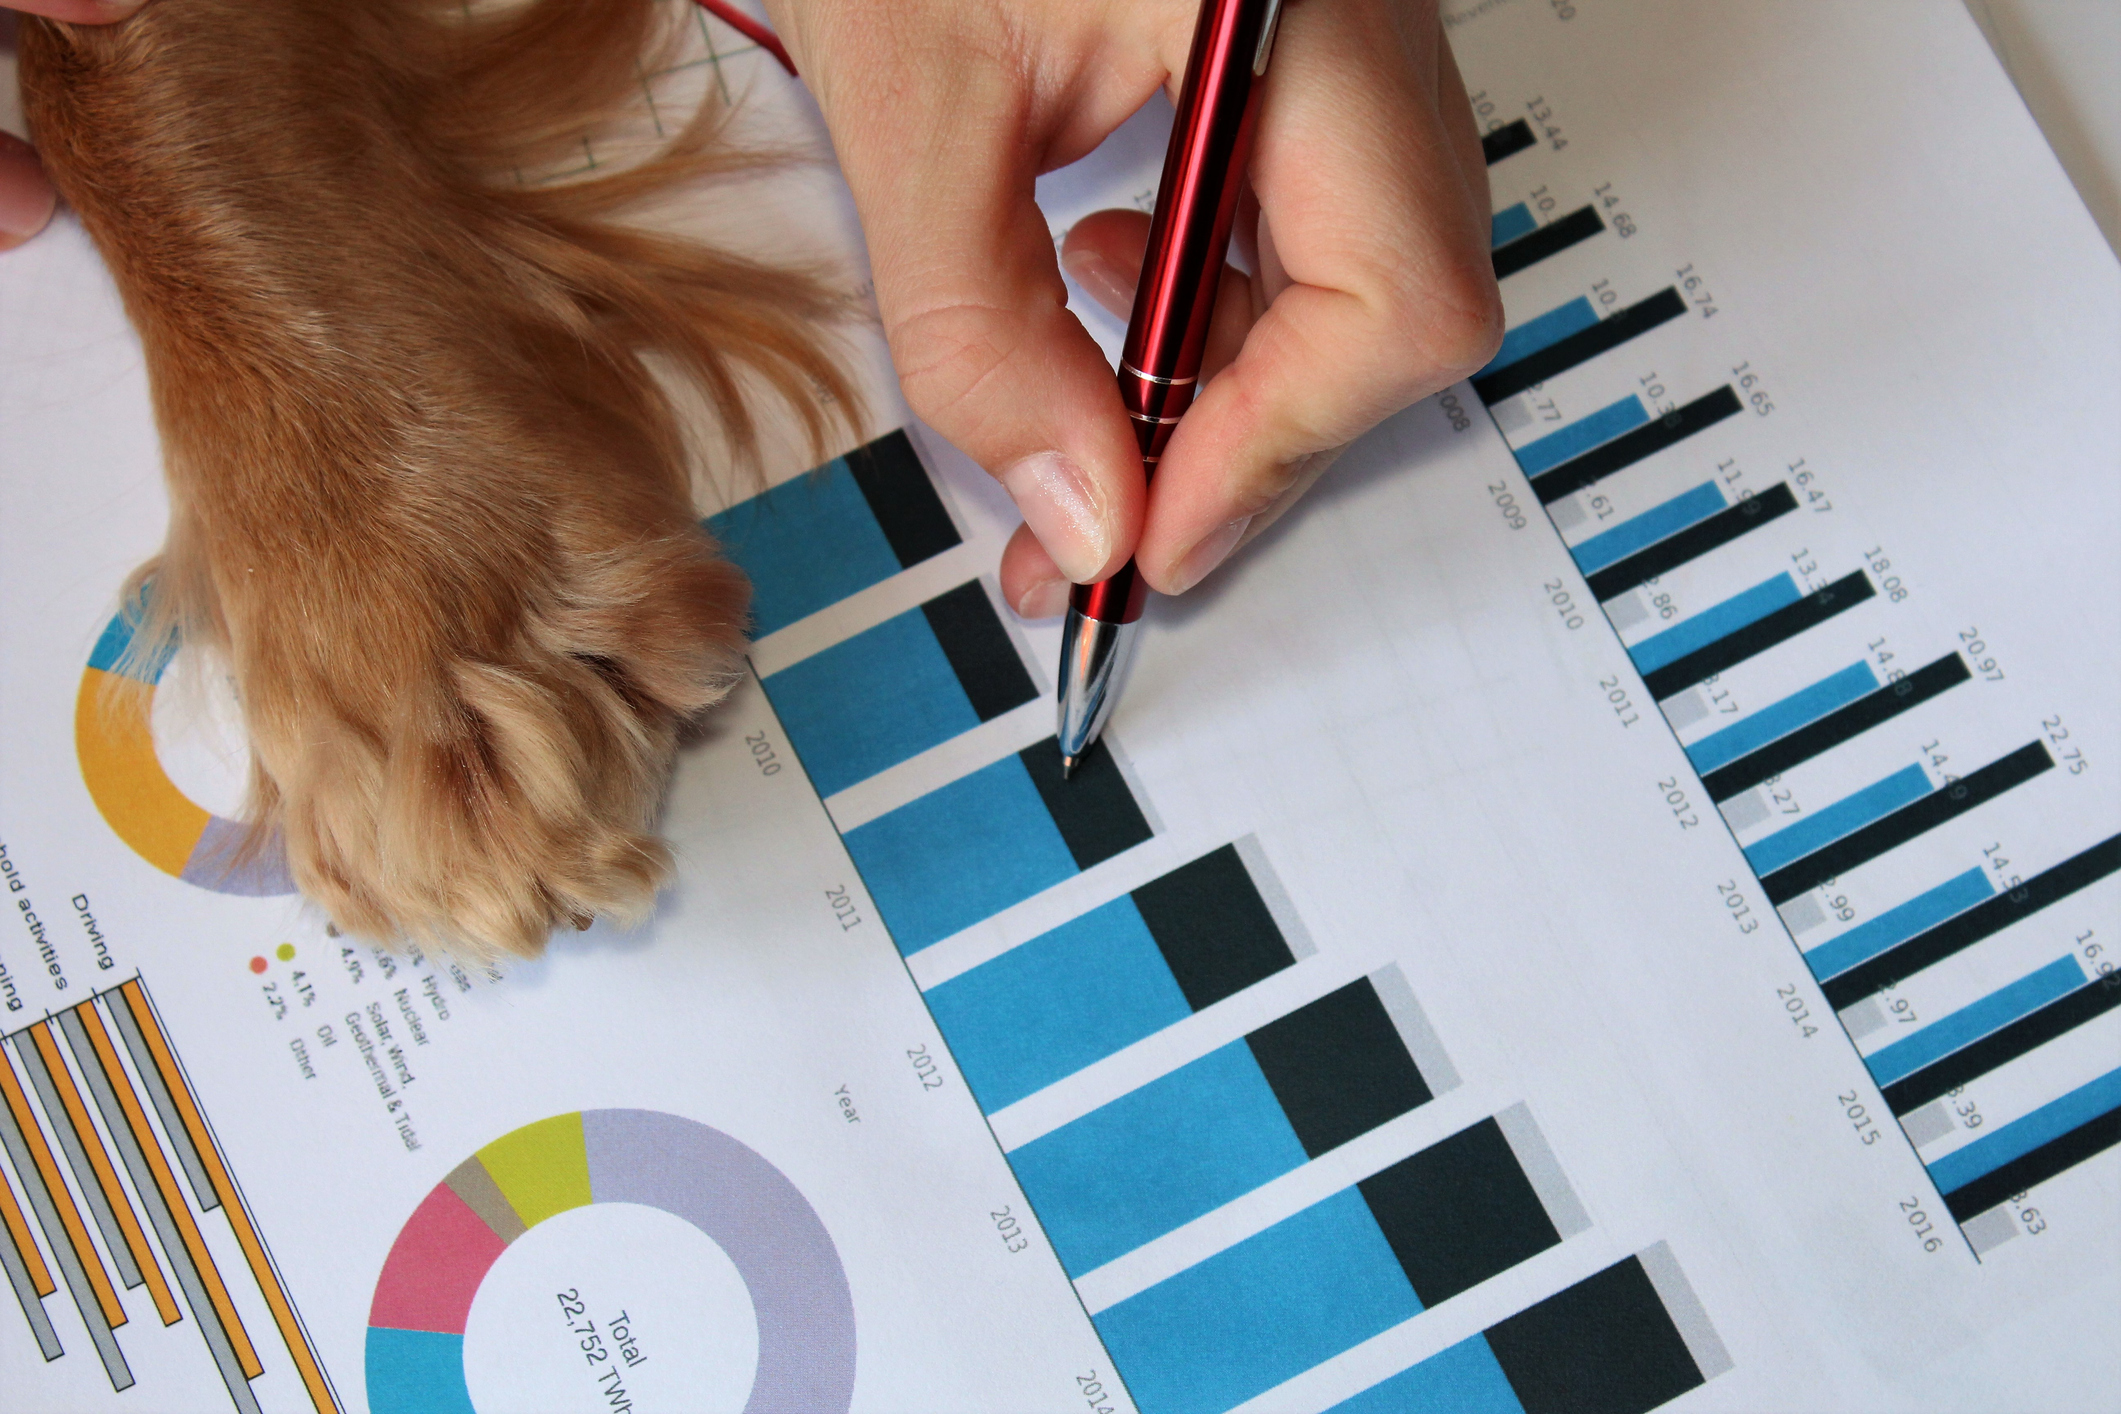 Dog paw on business documents.